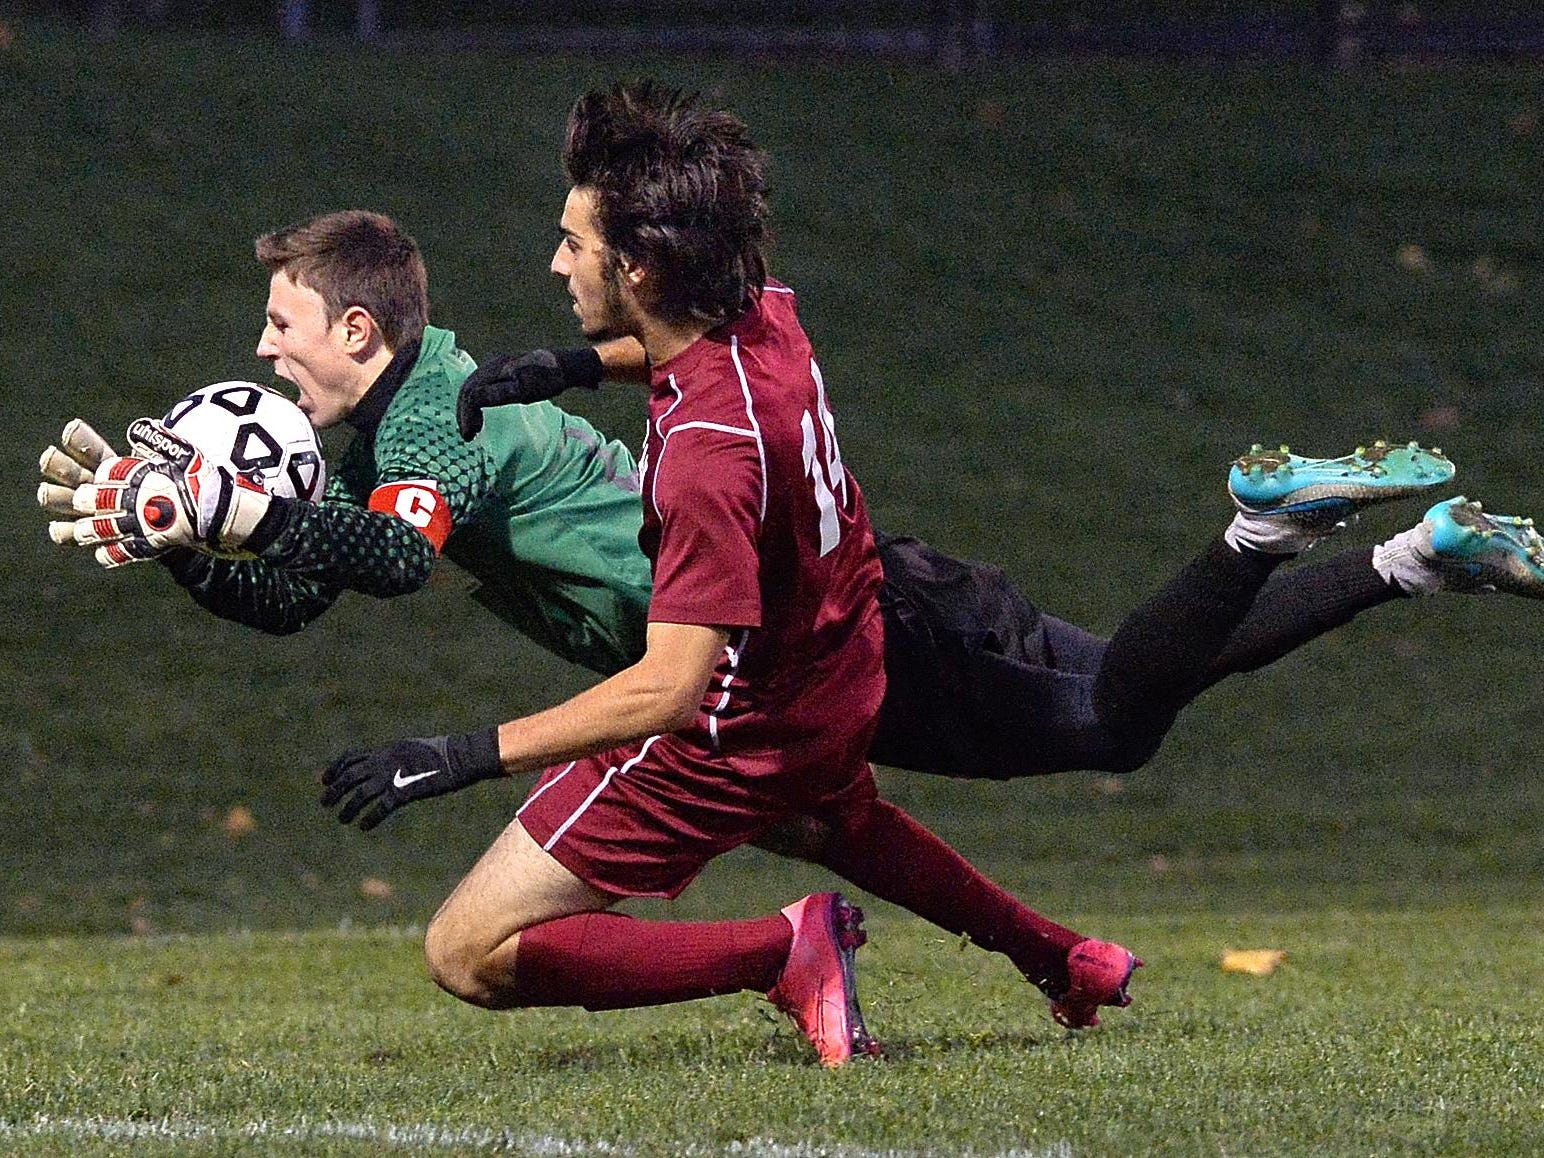 Hilton goalie Brian Wilkin, left, dives for the ball and collides with Walt Whitman's Anthony Palazzolo during a NYSPHSAA Boys Soccer Championships Class AA semifinal played at Middletown High School on Saturday, November 14, 2015. Hilton's season ended with a 7-3 loss to Walt Whitman-XI.